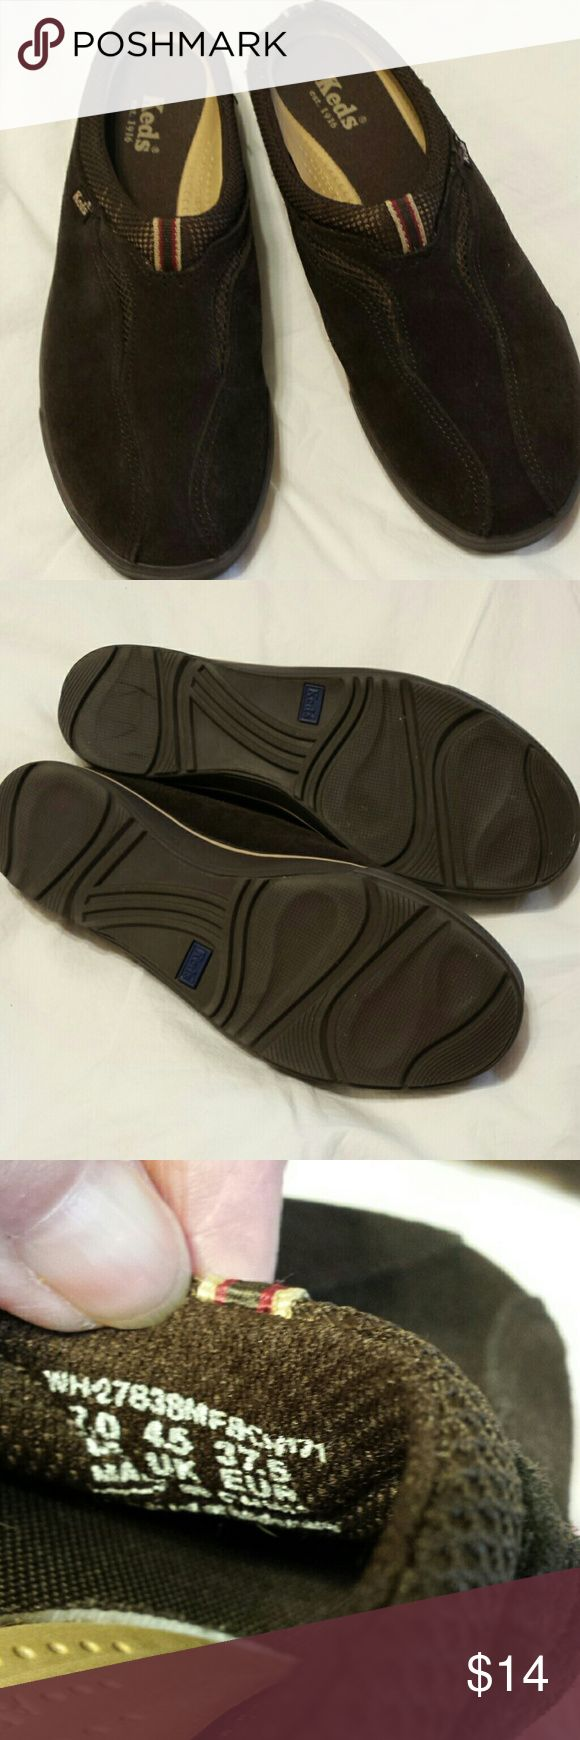 KEDS SLIP ONS Great condition, comfortable slip ons. Keds Shoes Flats & Loafers